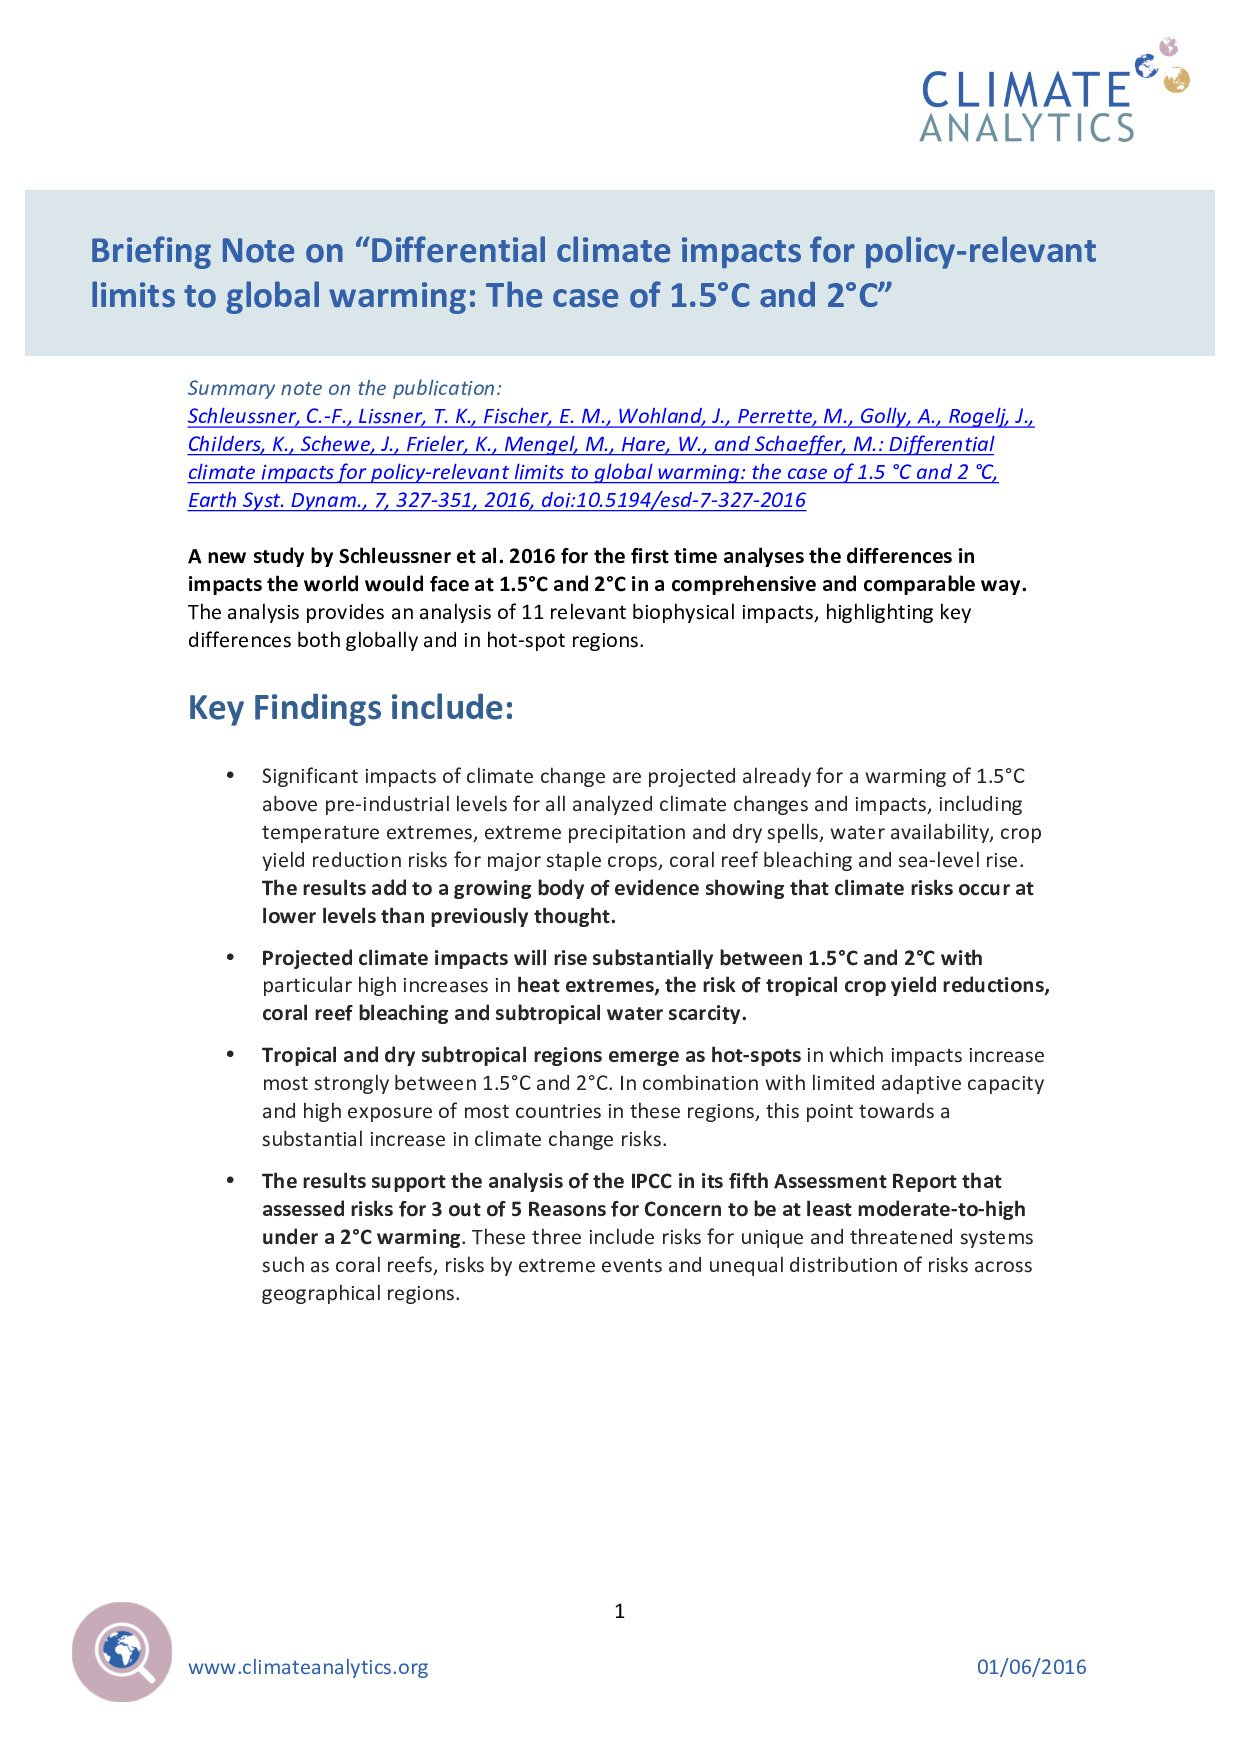 Briefing note on differential climate impacts for policy relevant briefing note on differential climate impacts for policy relevant limits to global warming the case of 15c and 2c climate analytics publicscrutiny Image collections